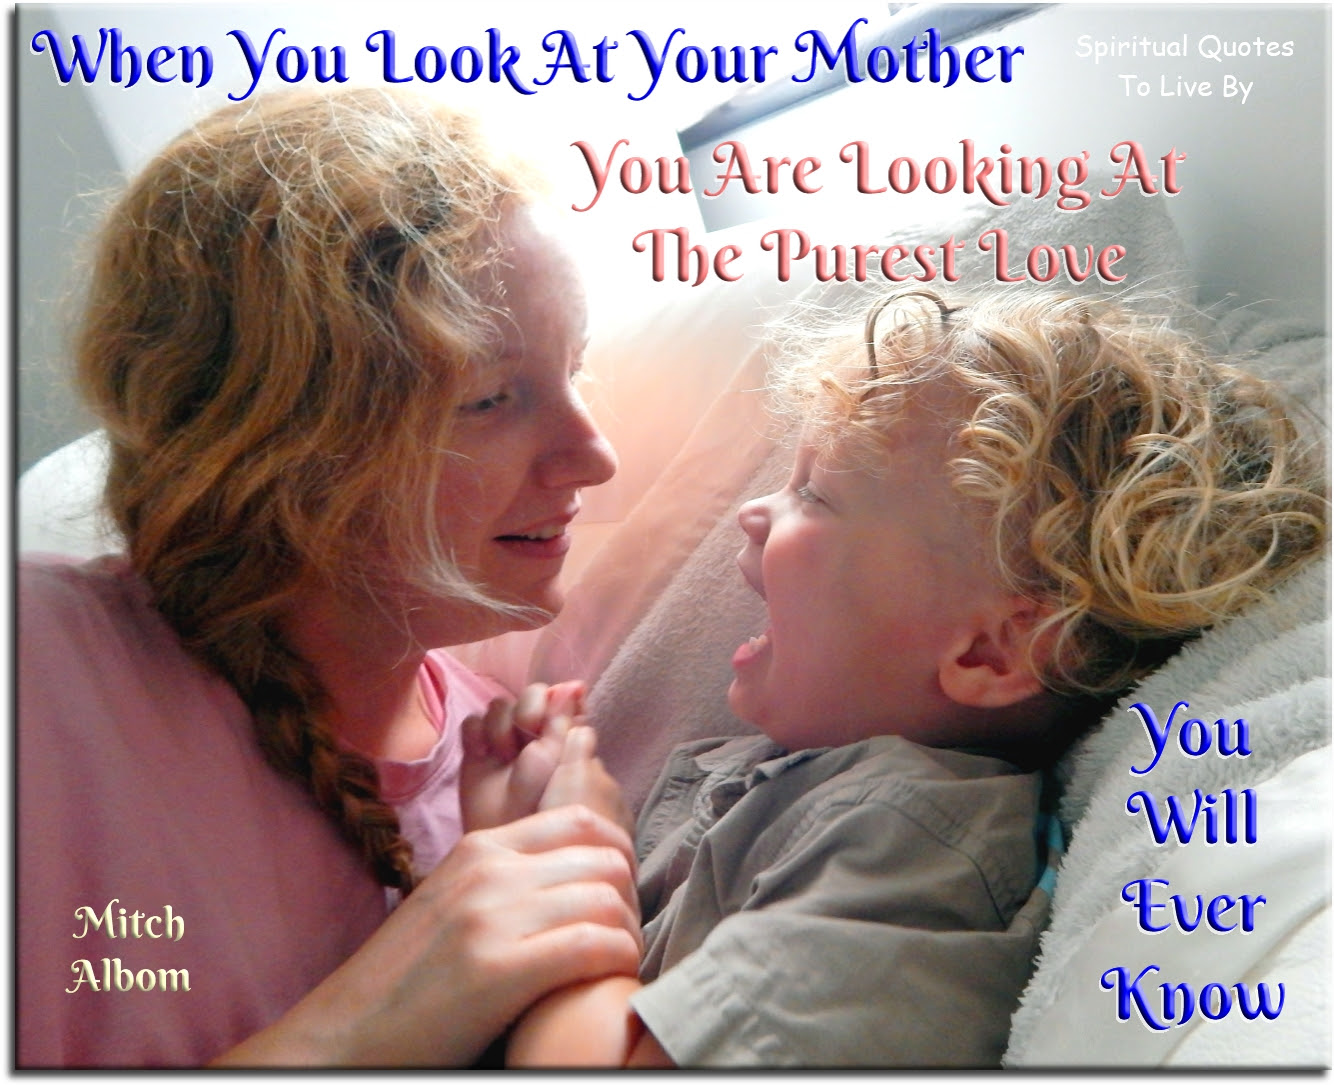 100 Positive Mother Quotes To Live By